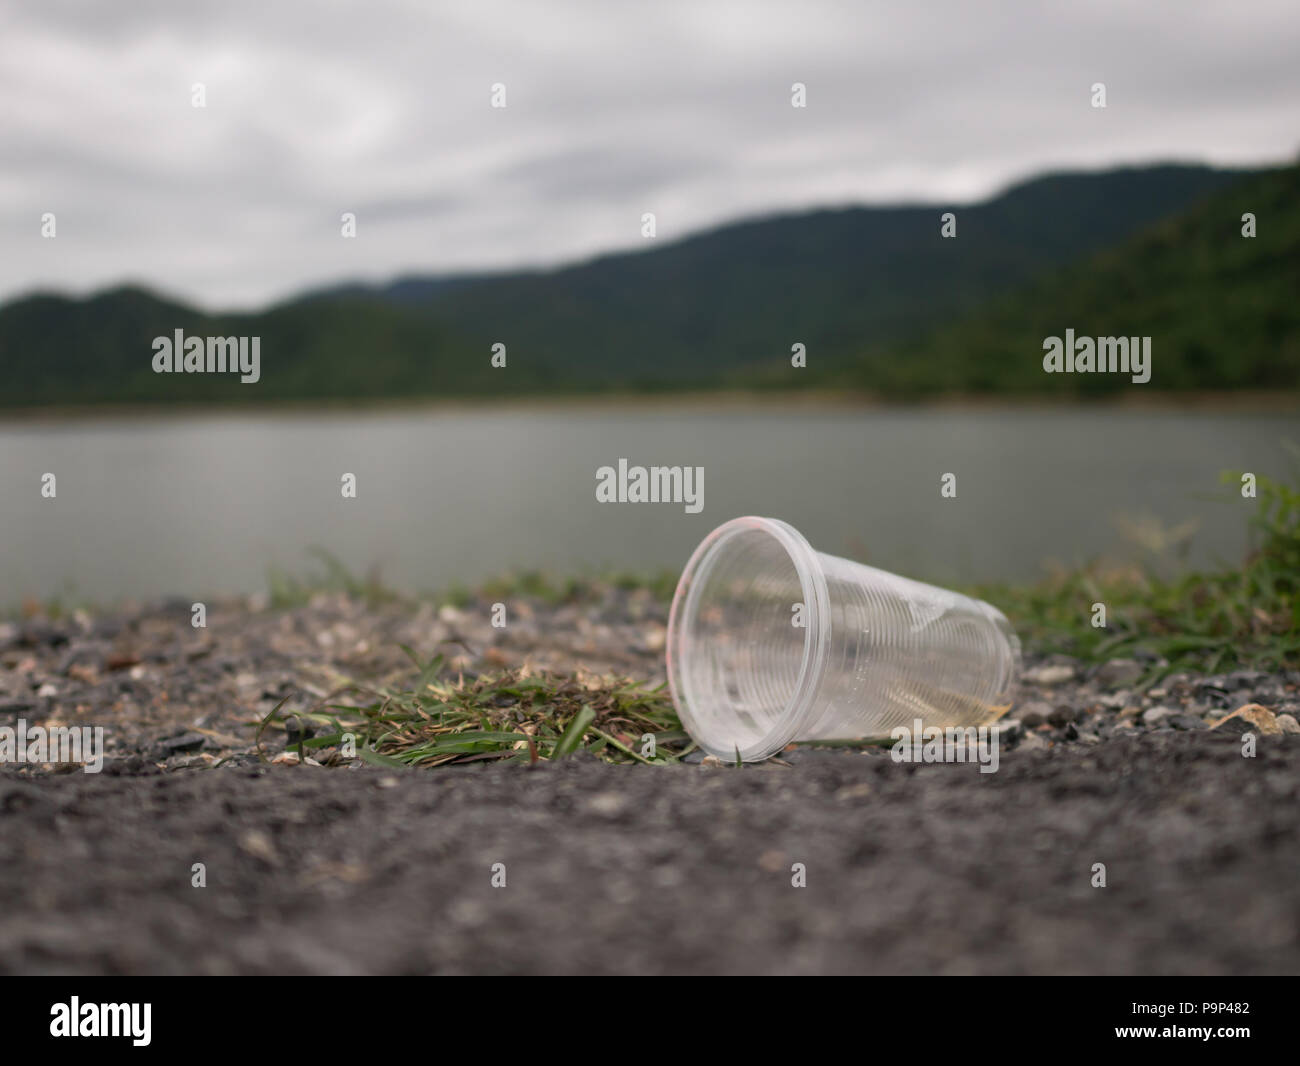 Plastic glasses were left by tourists. - Stock Image